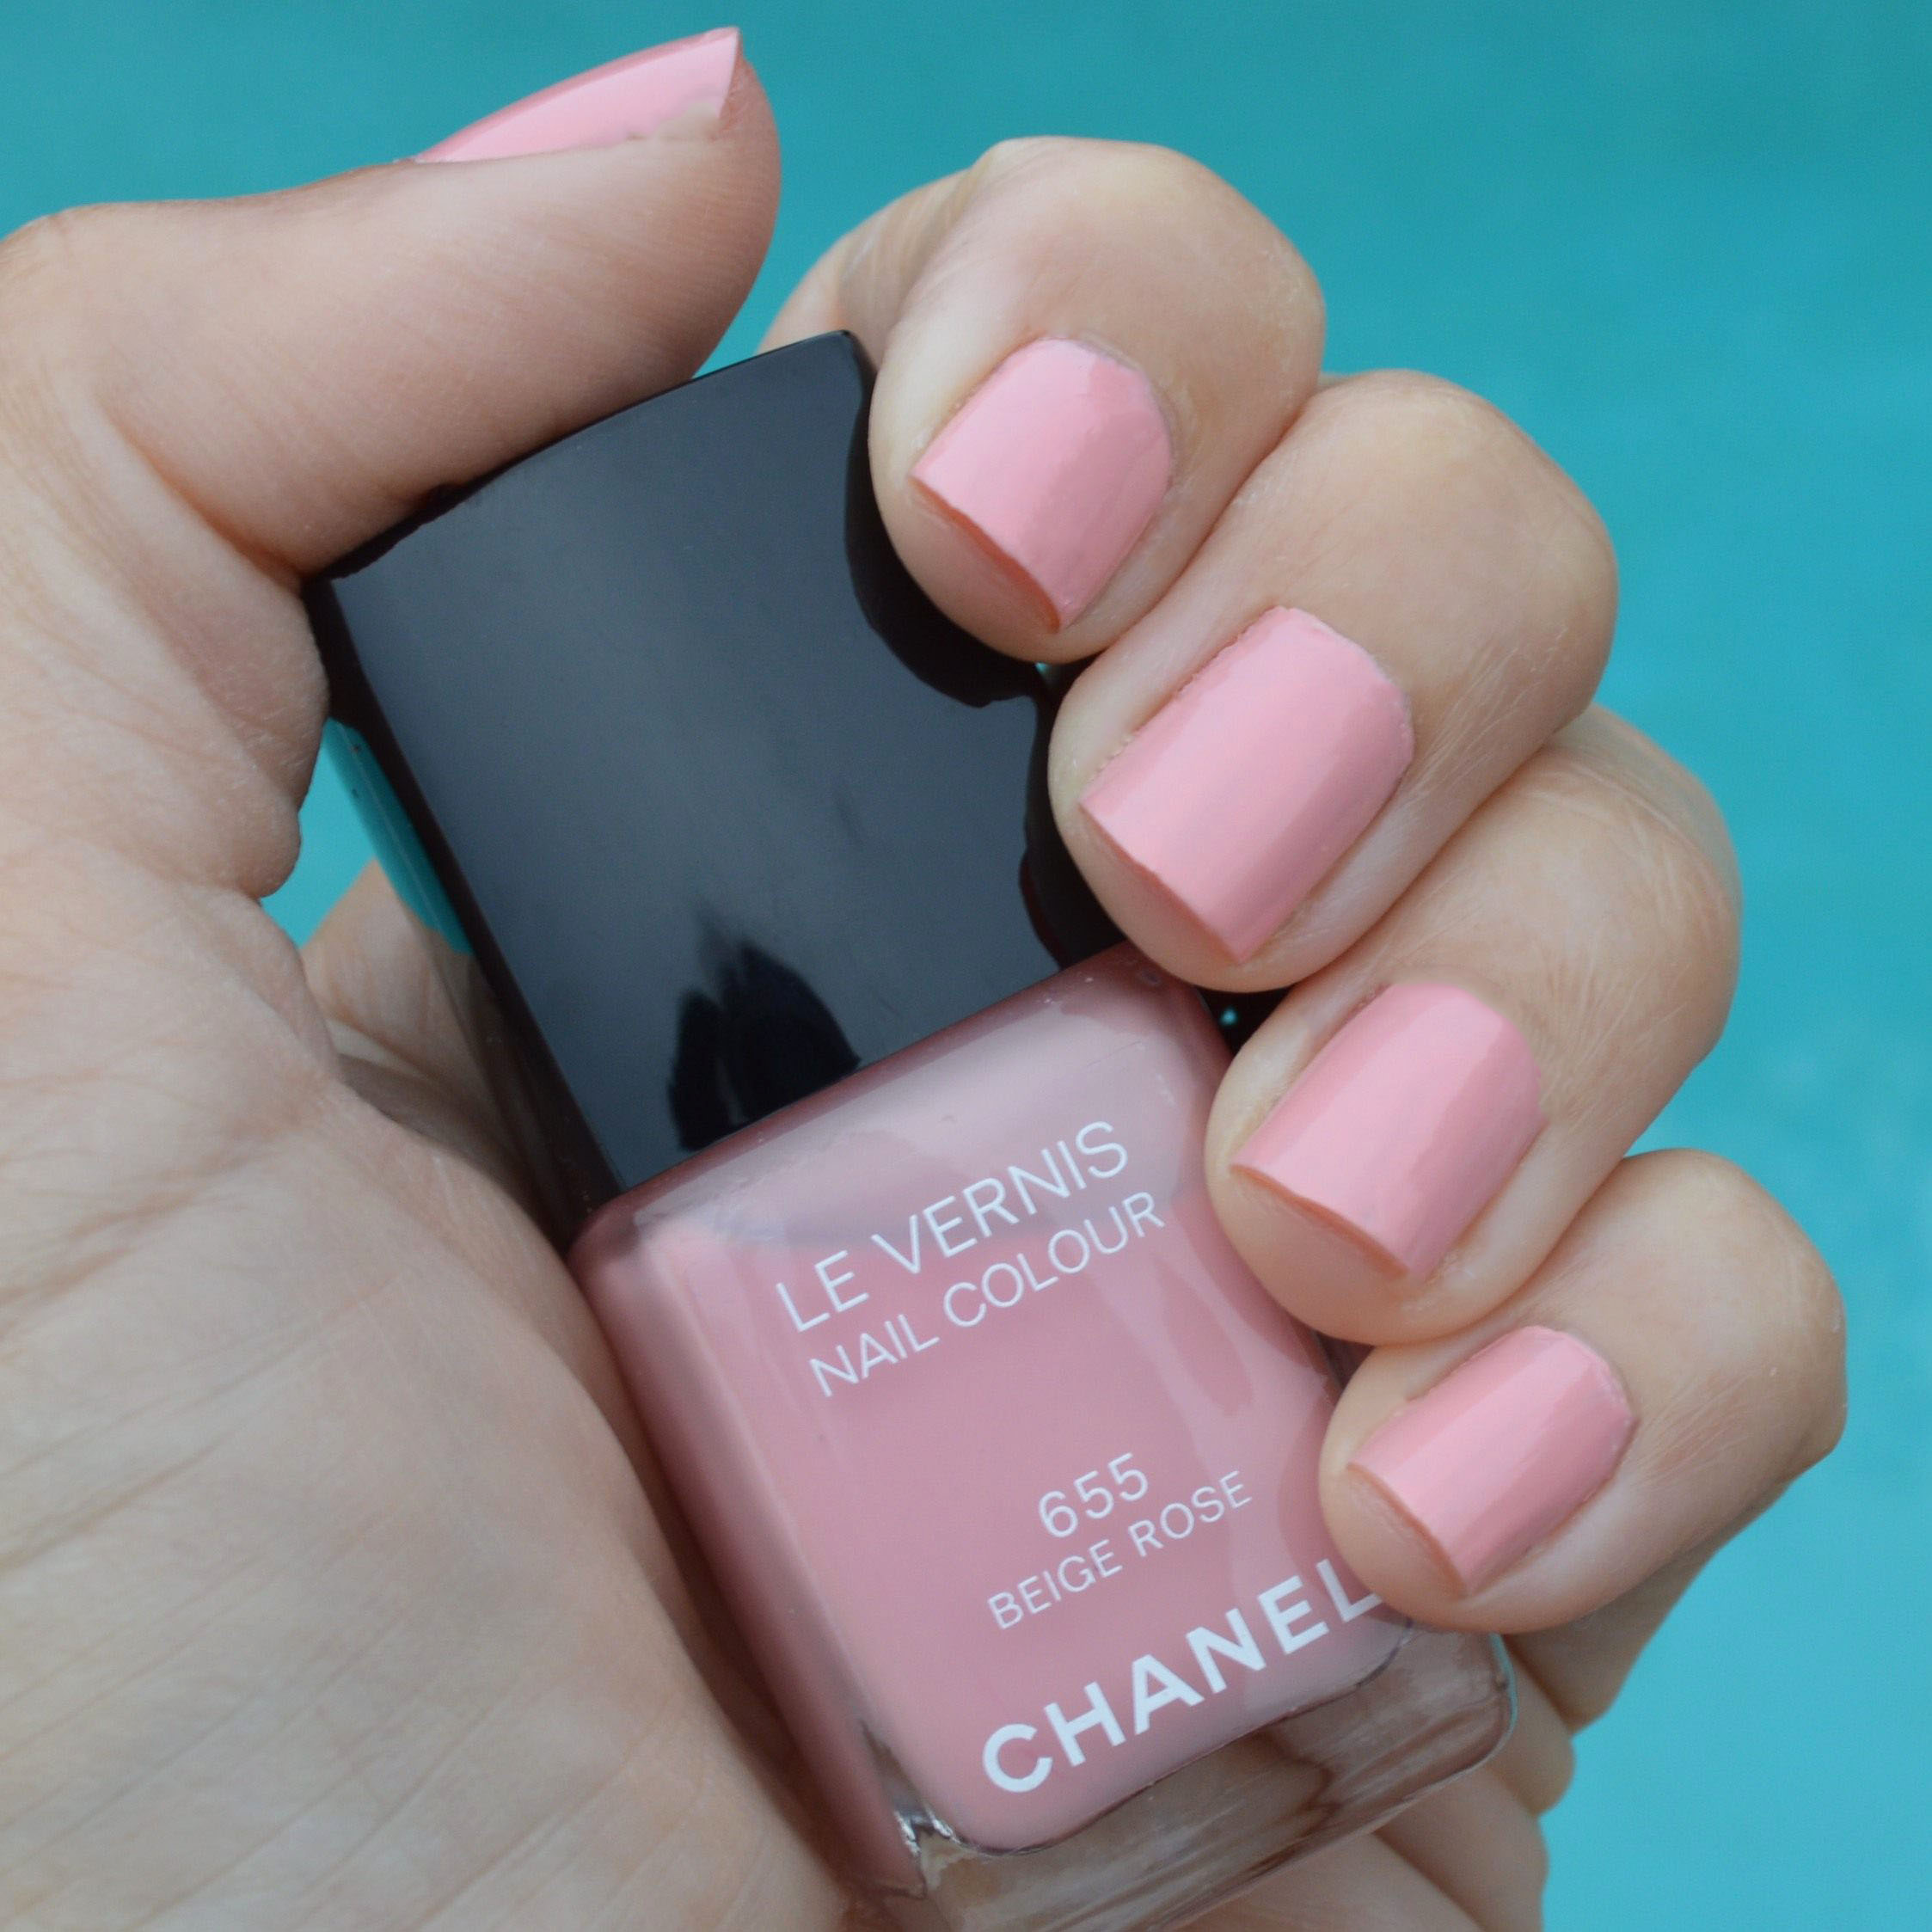 Chanel Beige Rose nail polish review – Bay Area Fashionista